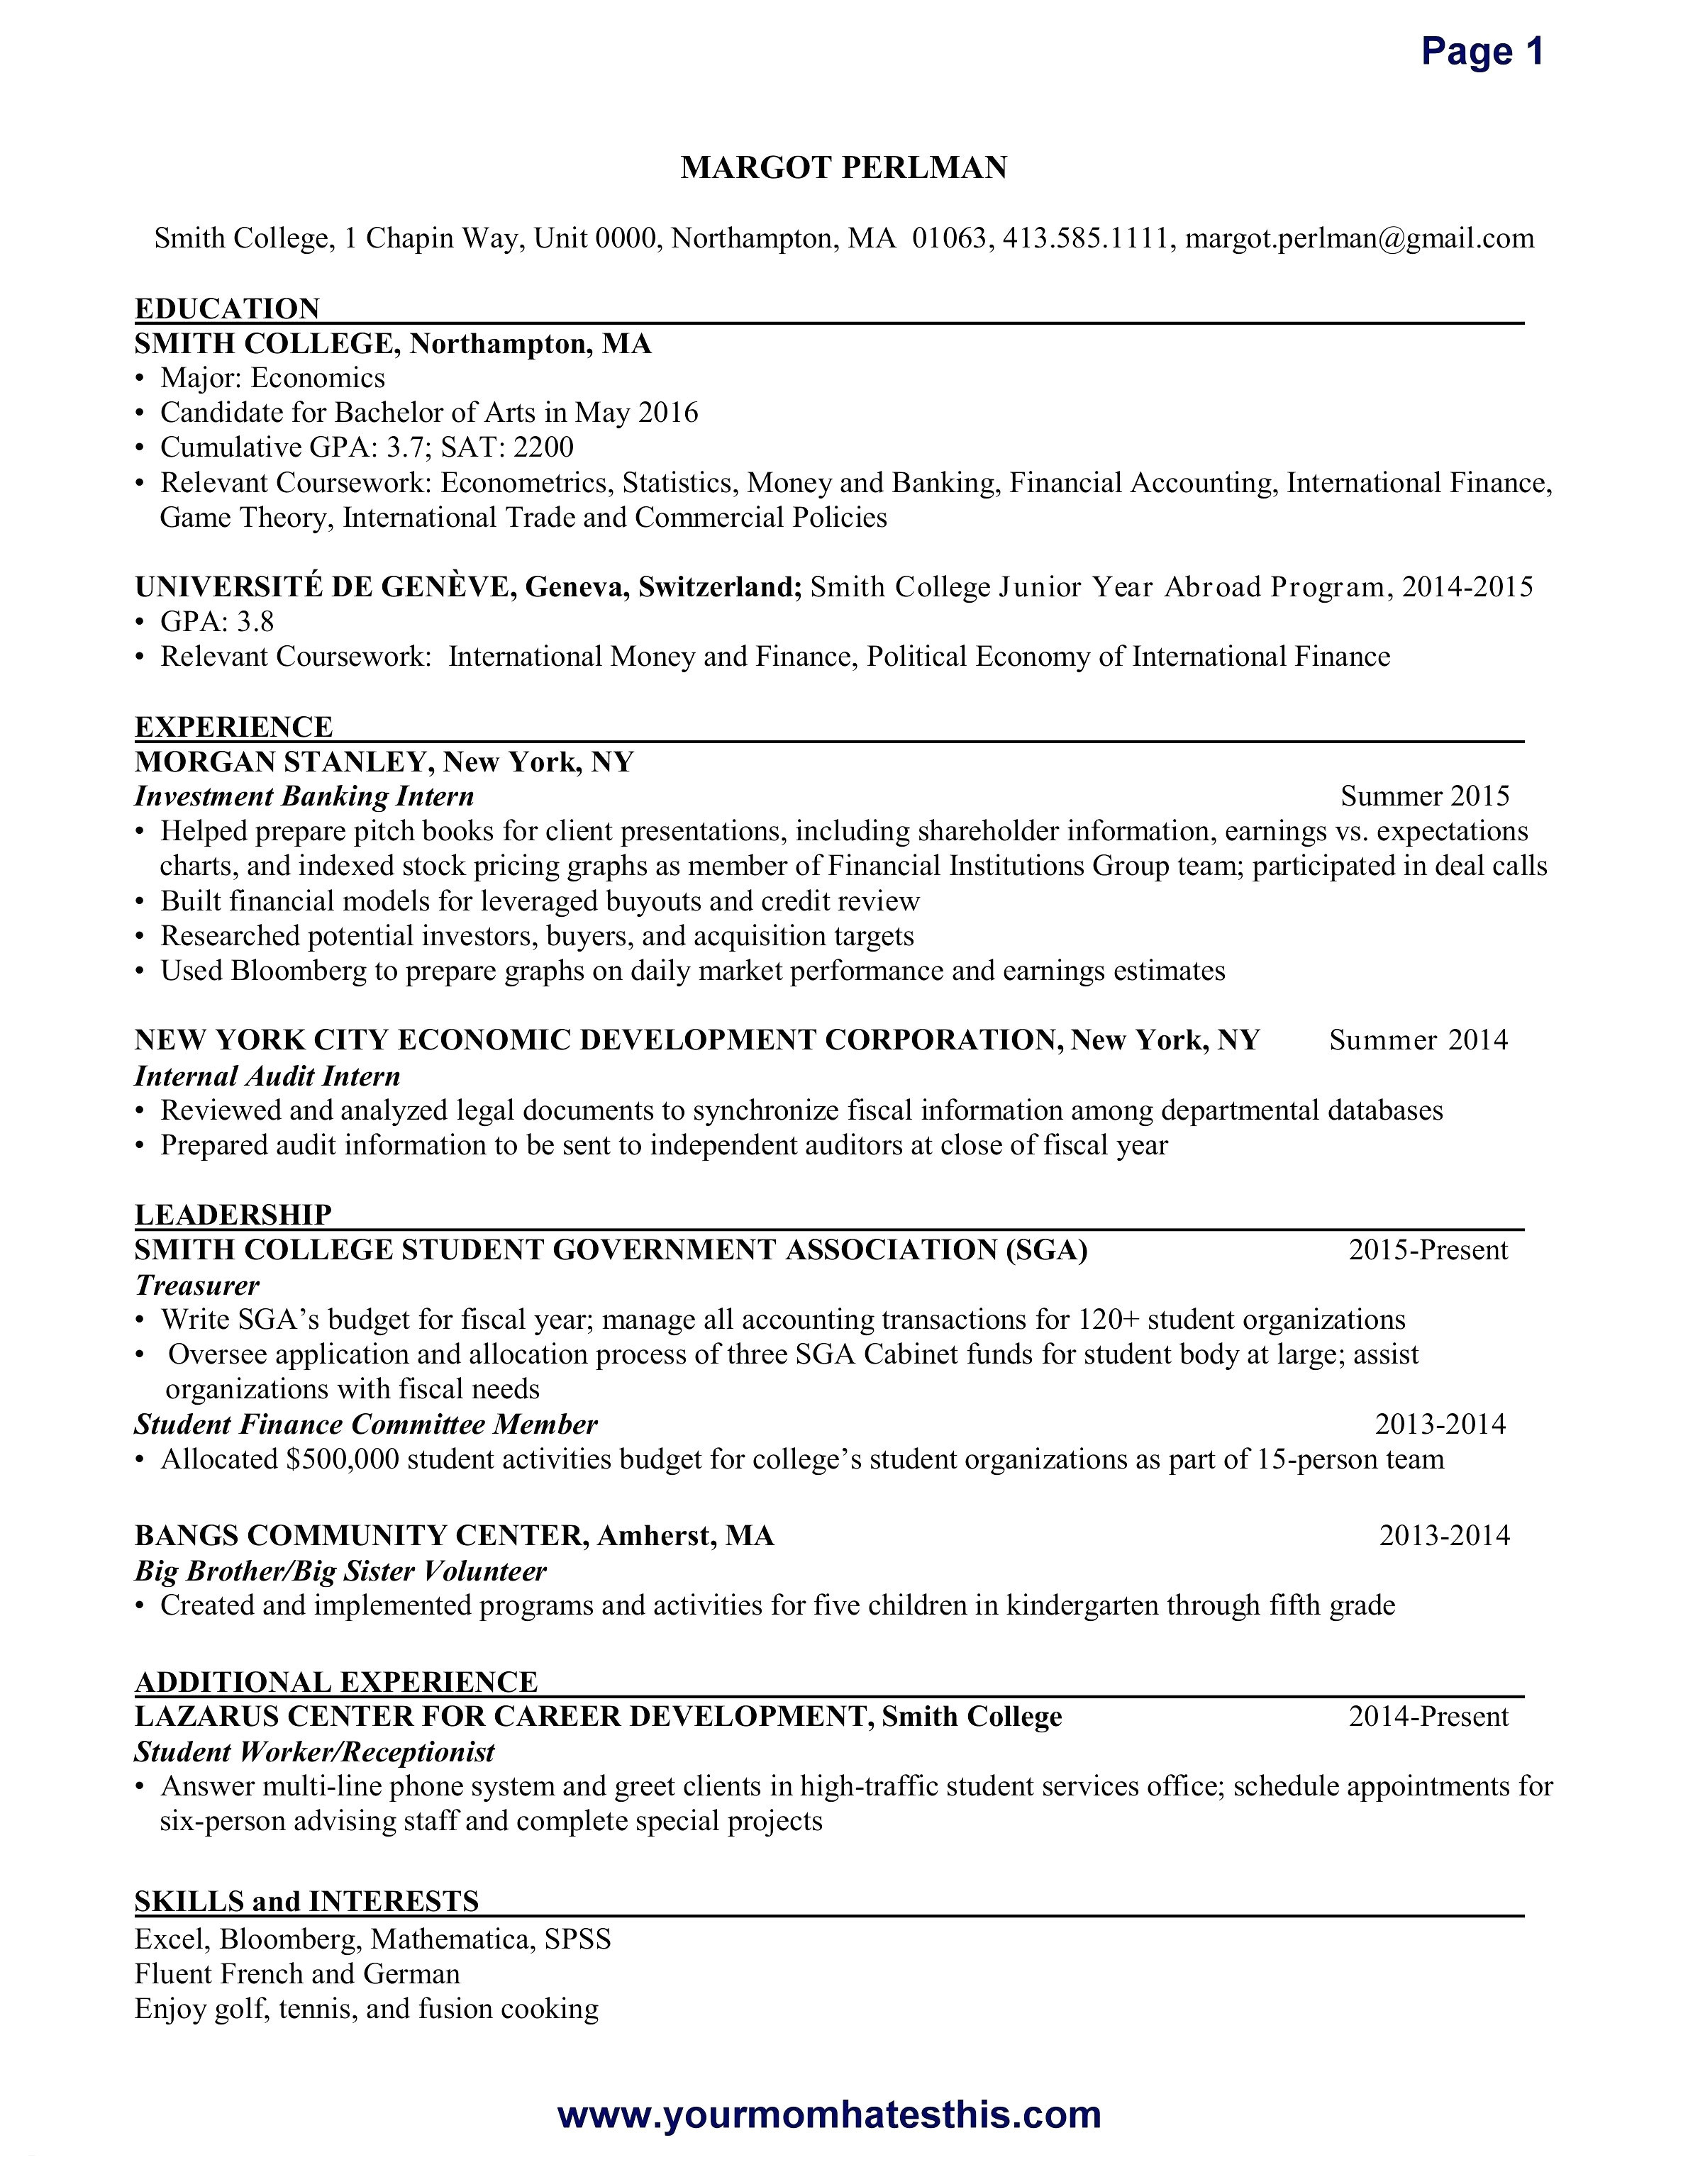 Is It Bad to Use A Resume Template - Awesome Security Ficer Resume Sample